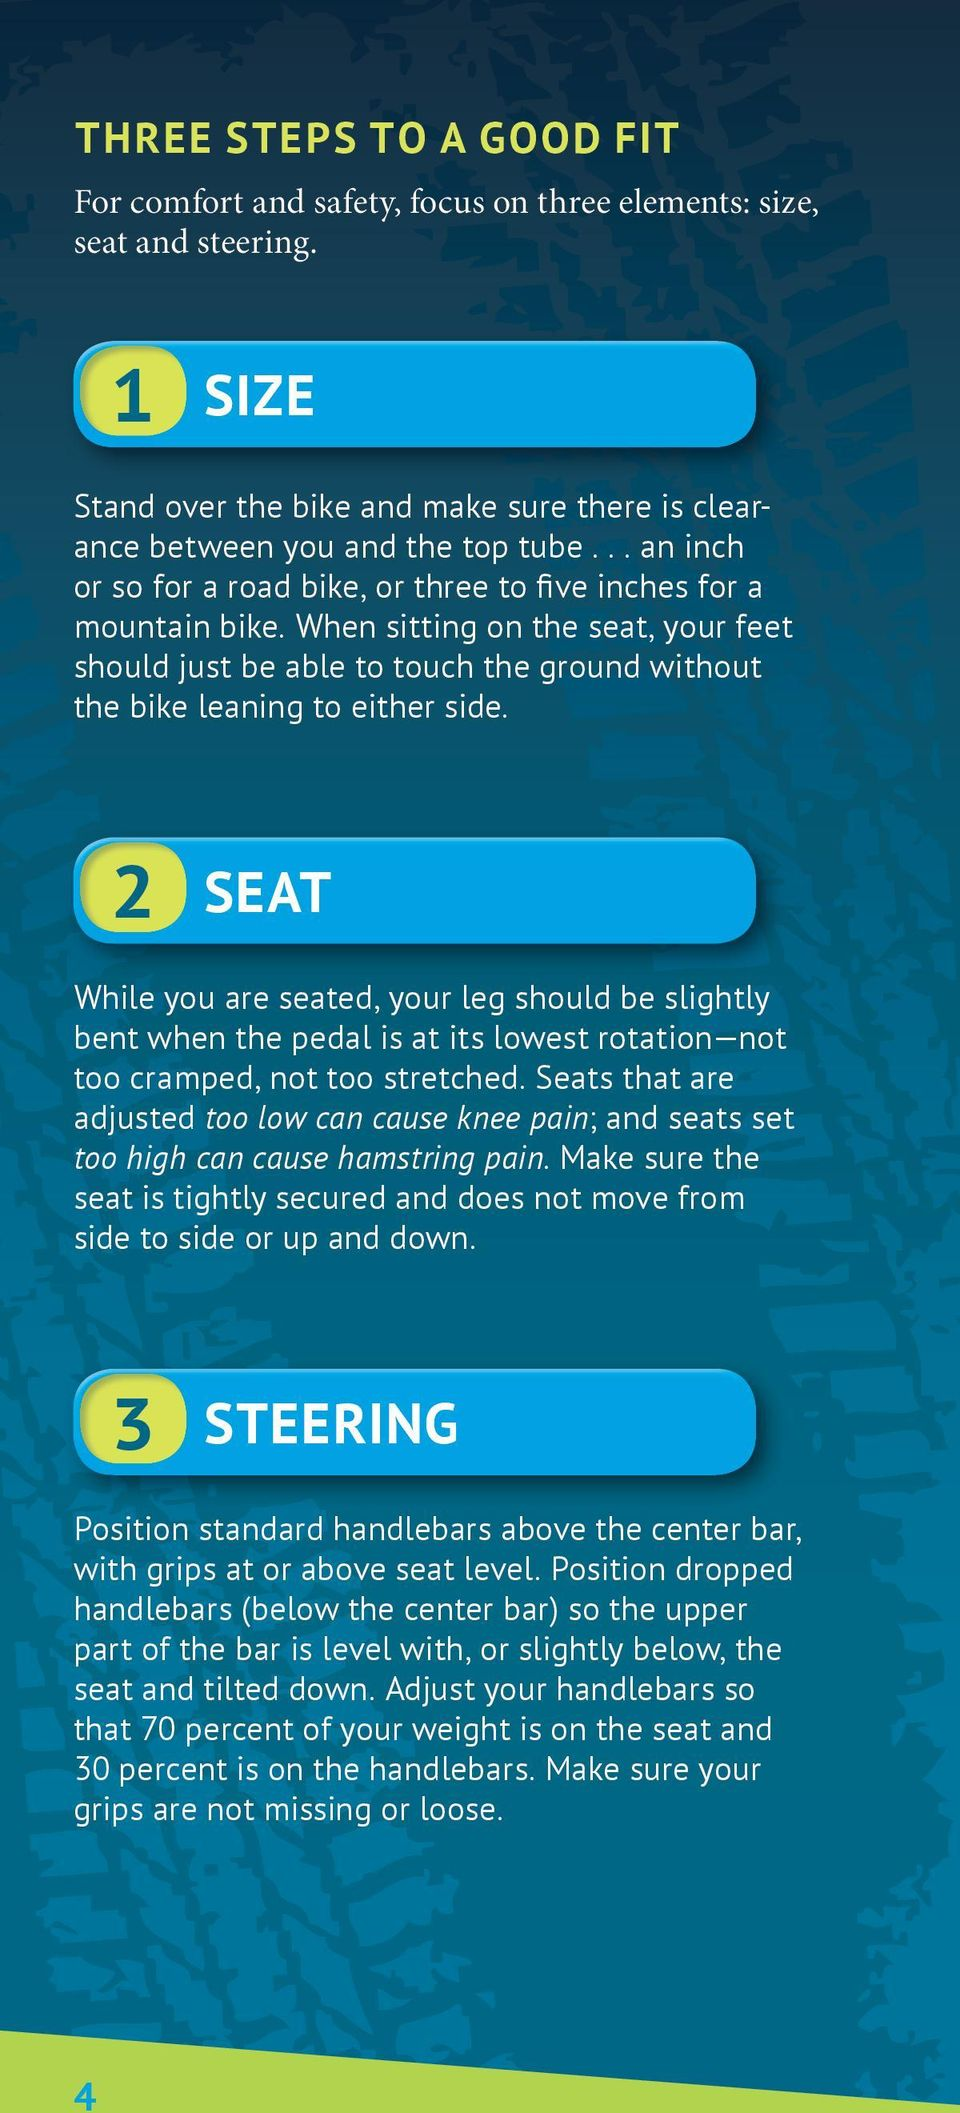 2 SEAT While you are seated, your leg should be slightly bent when the pedal is at its lowest rotation not too cramped, not too stretched.